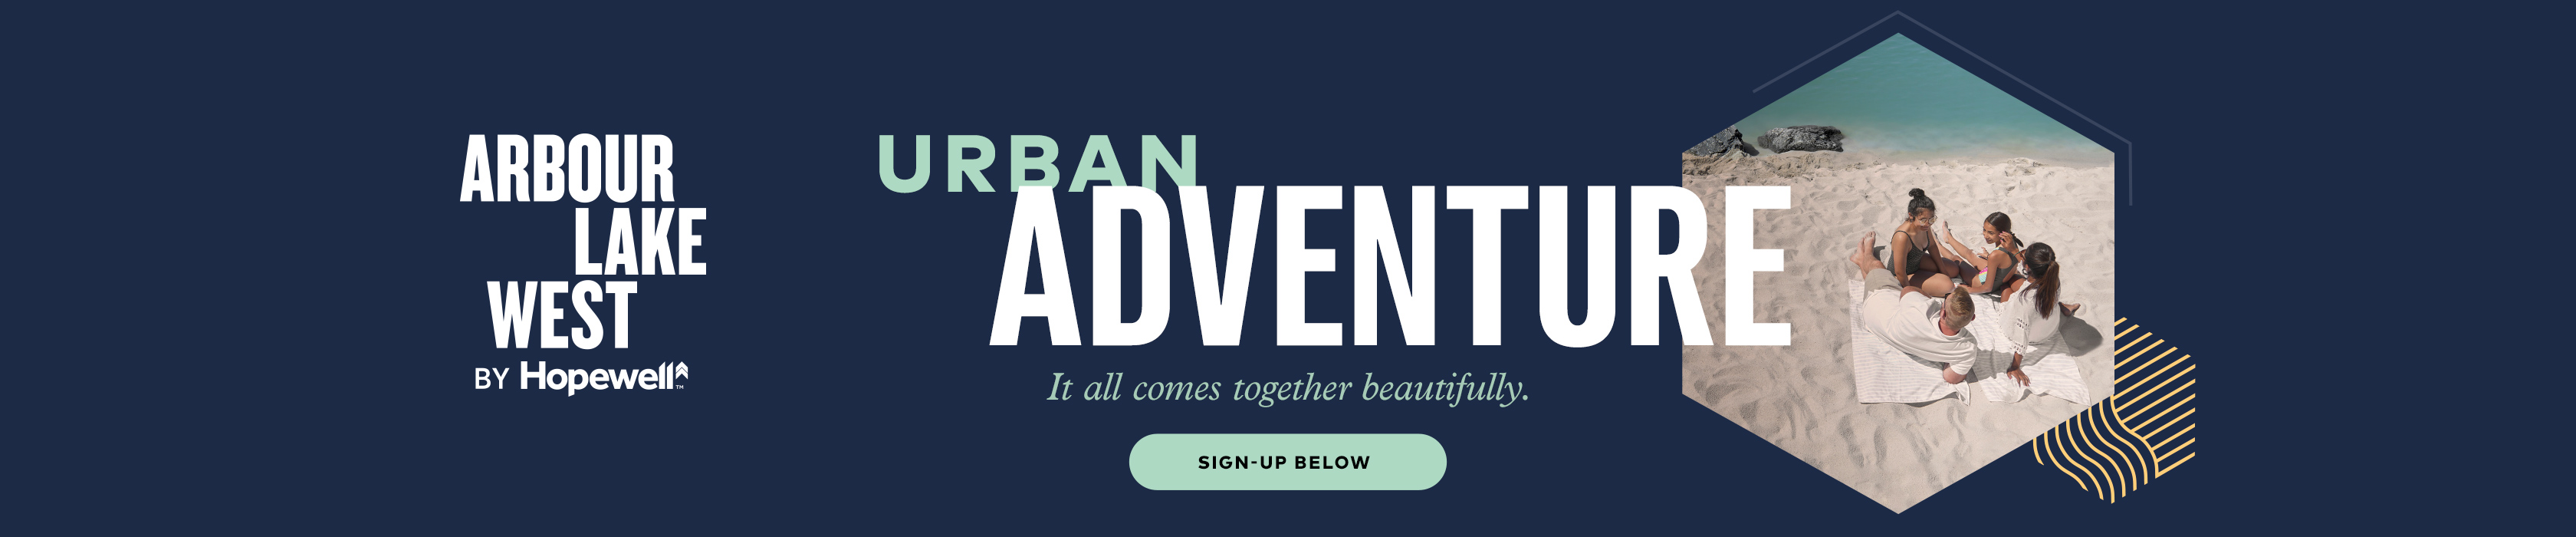 Arbour Lake West Urban Adventure banner with Sign Up button